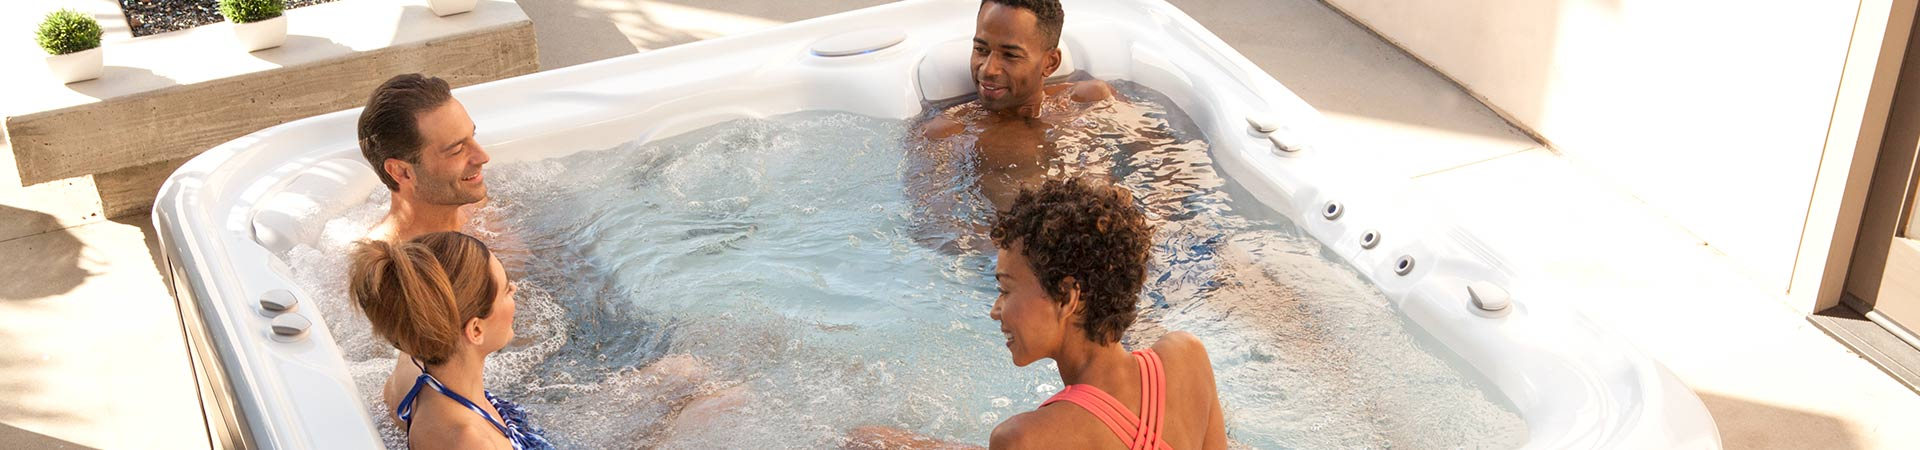 3 Ways to Maximize Hydrotherapy Health Benefits at Home, Hot Tubs St. Louis